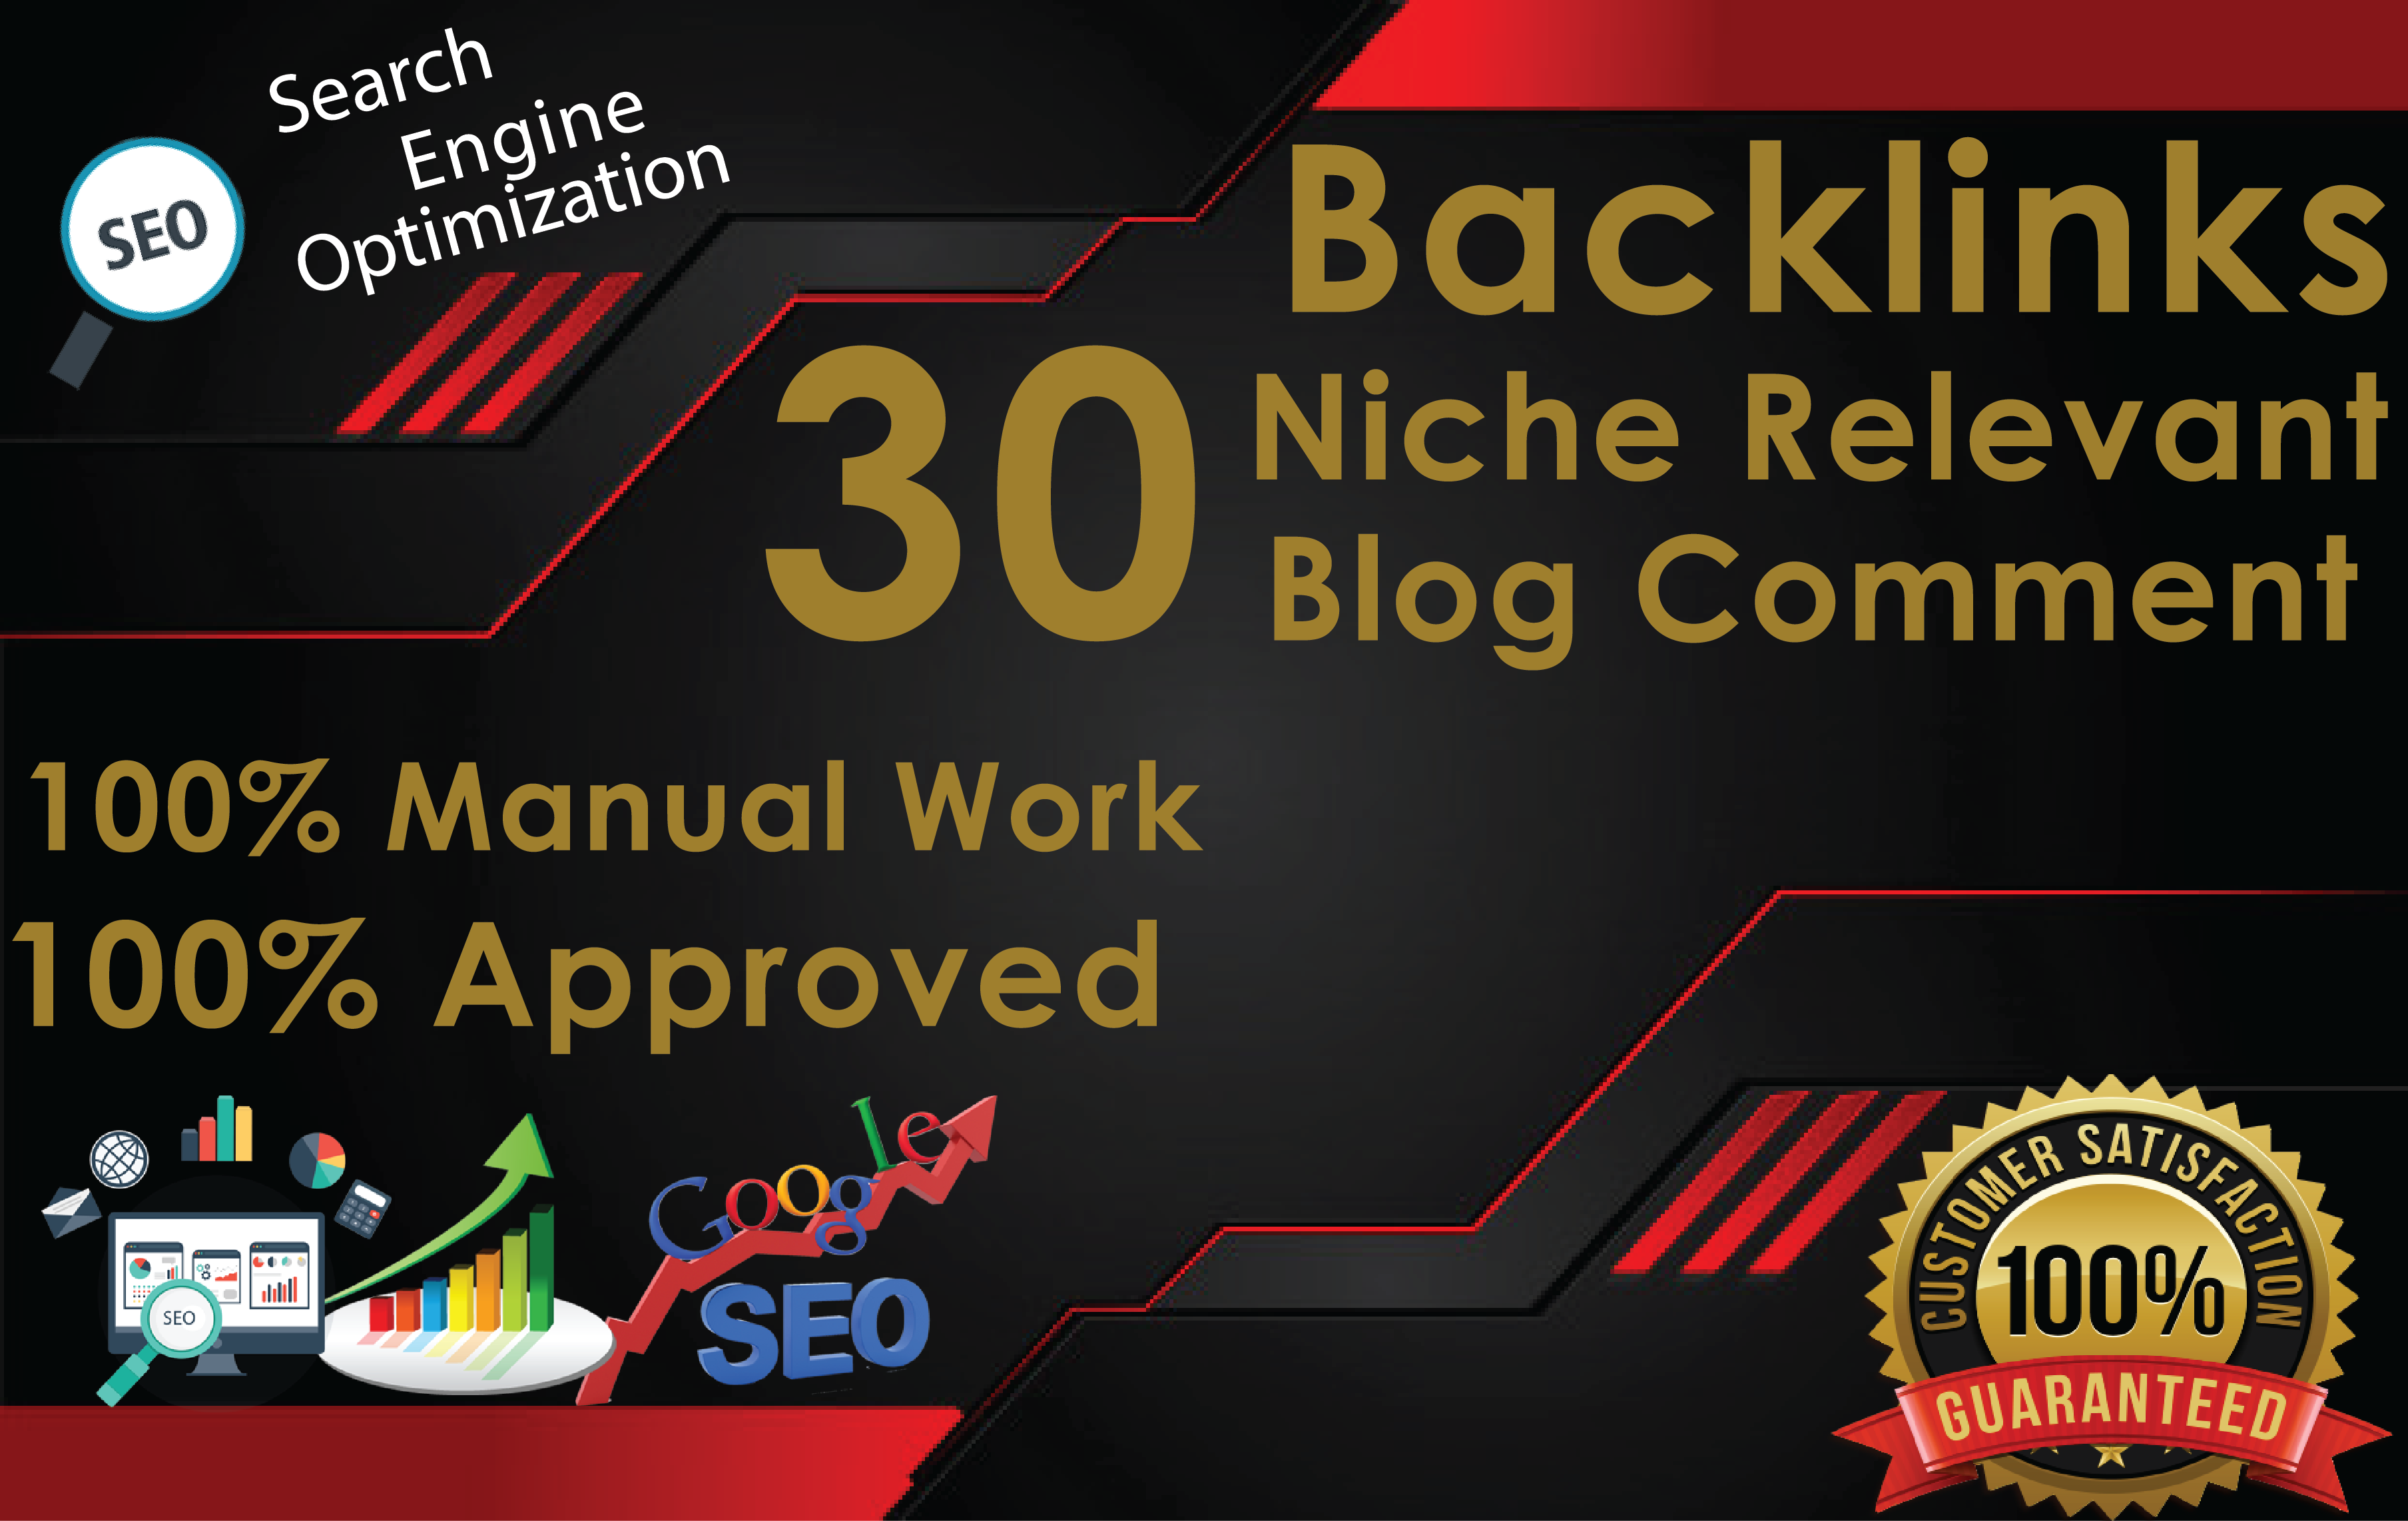 I will do 30 niche relevant blog comments on high domain backlinks